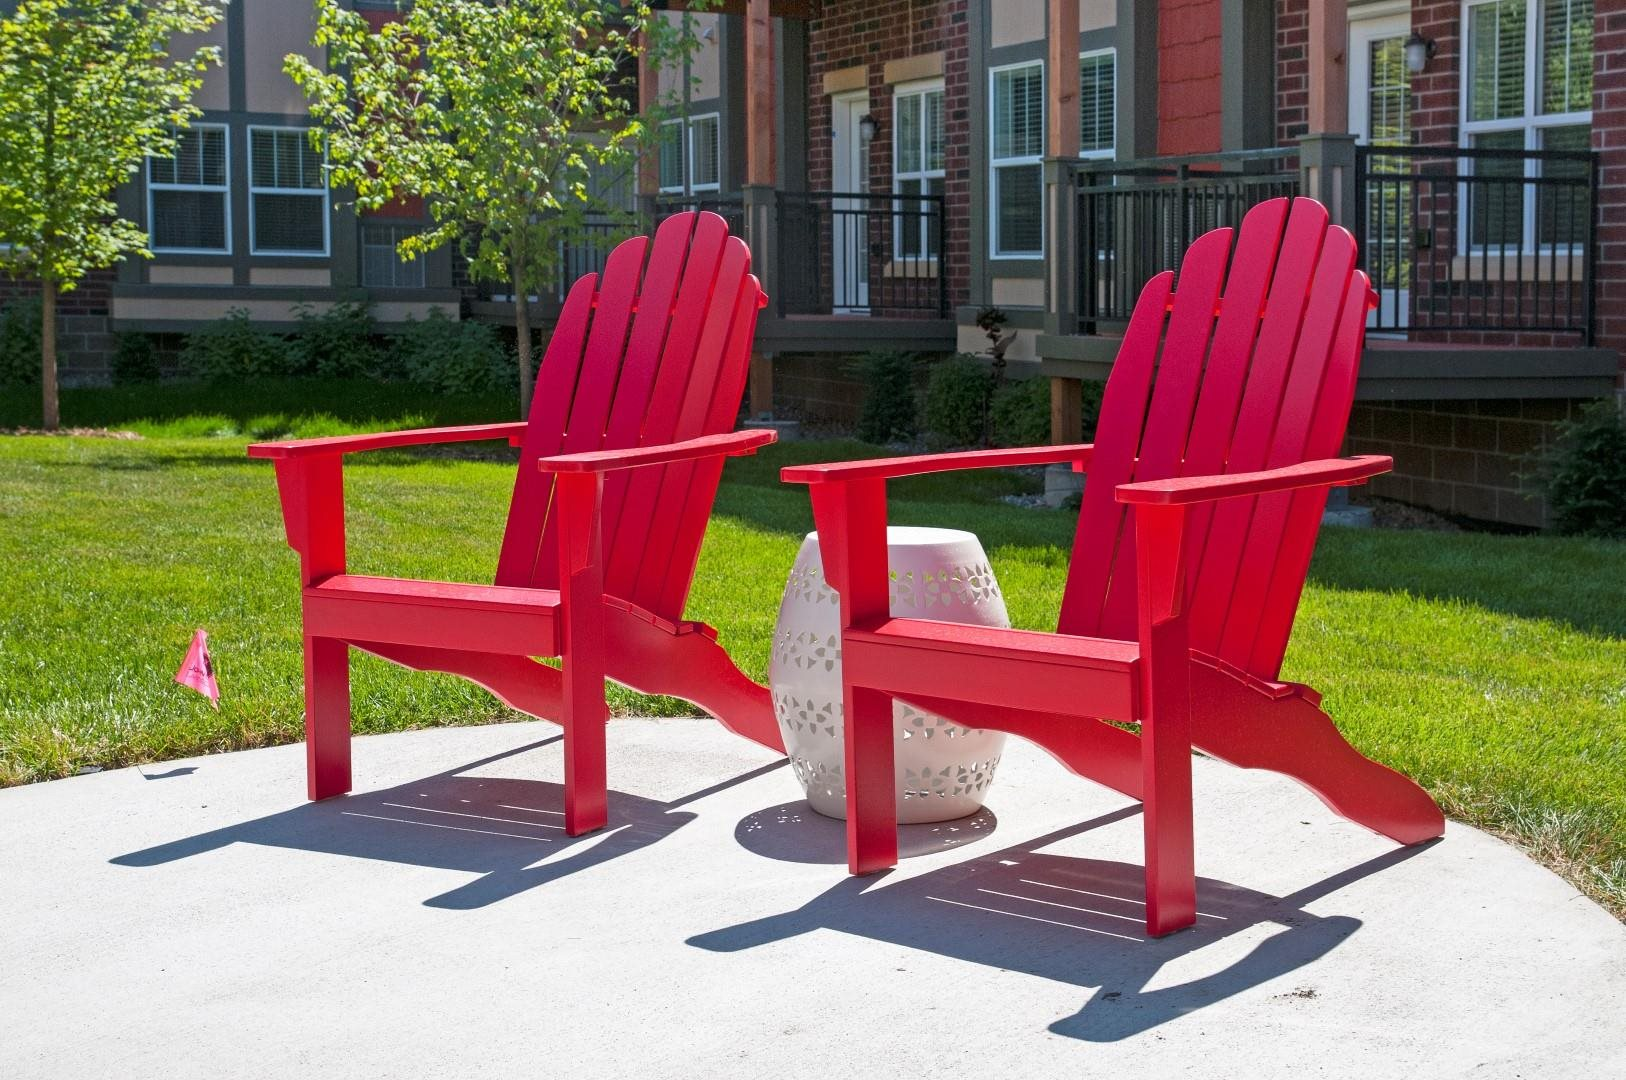 Outdoor Picnic and Relaxing Area at 5 Central Apartments, Osseo, MN 55369